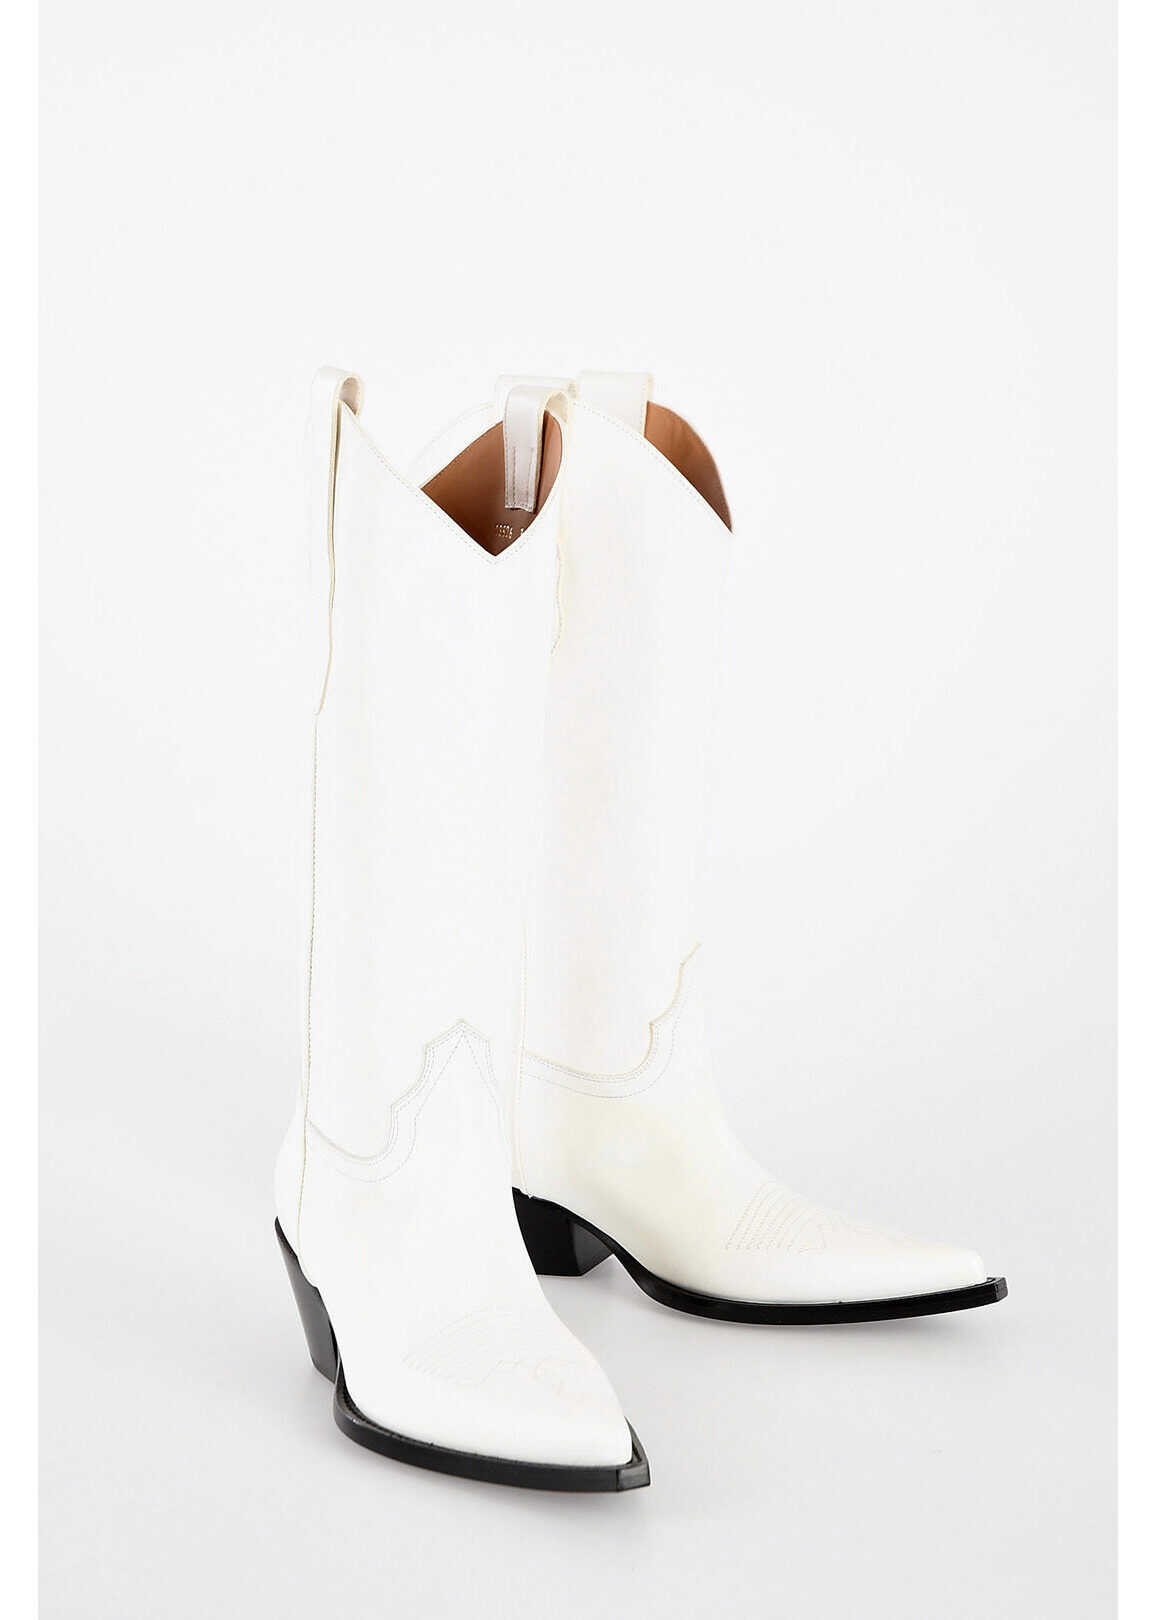 Maison Margiela MM22 Leather Texano Boots WHITE